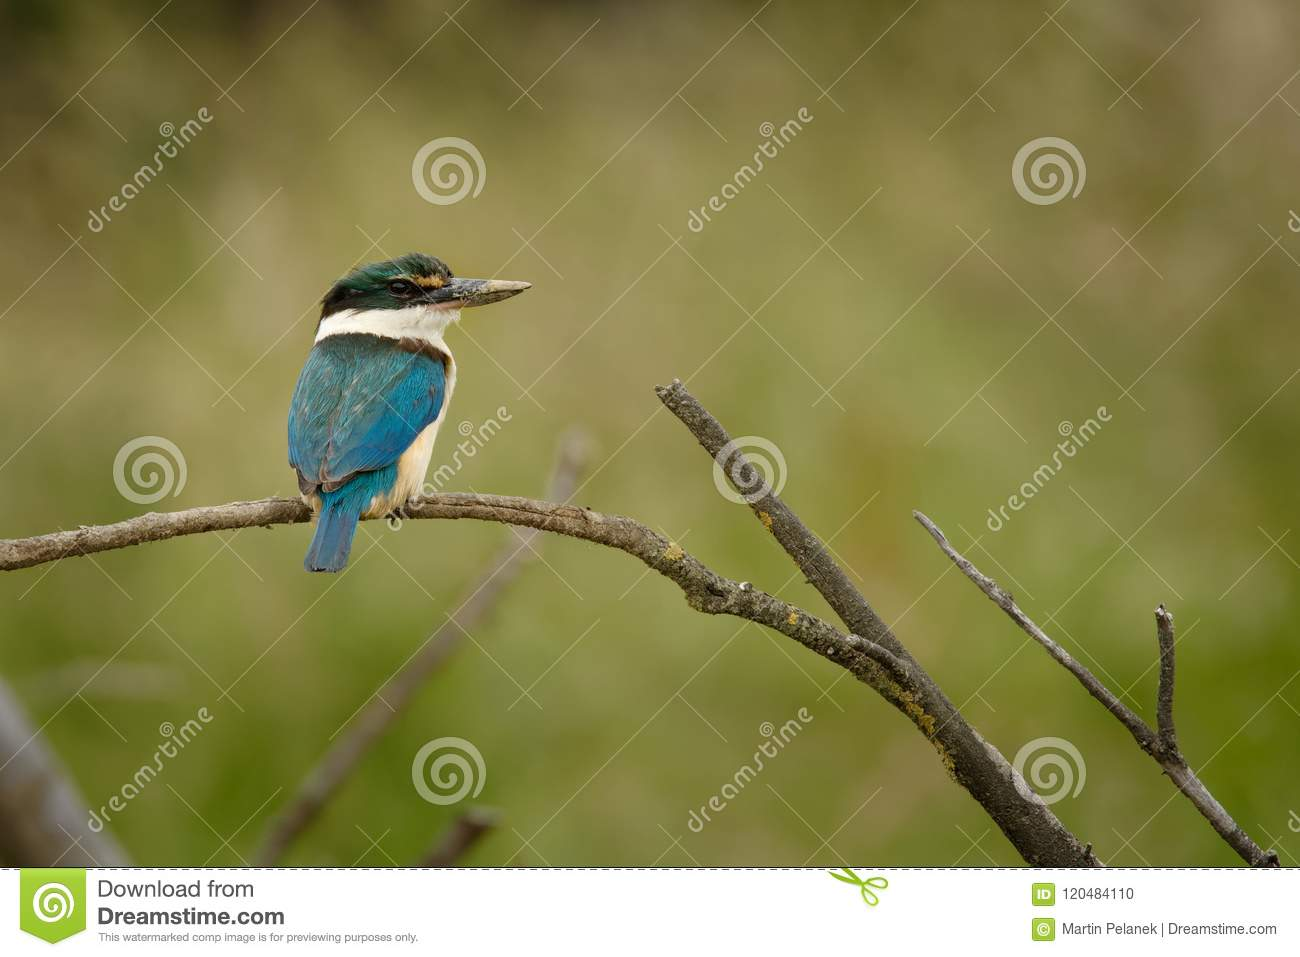 Todiramphus sanctus - Sacred kingfisher - kotare small kingfisher from New Zealand, Thailand, Asia. Hunting crabs, frogs, fish in